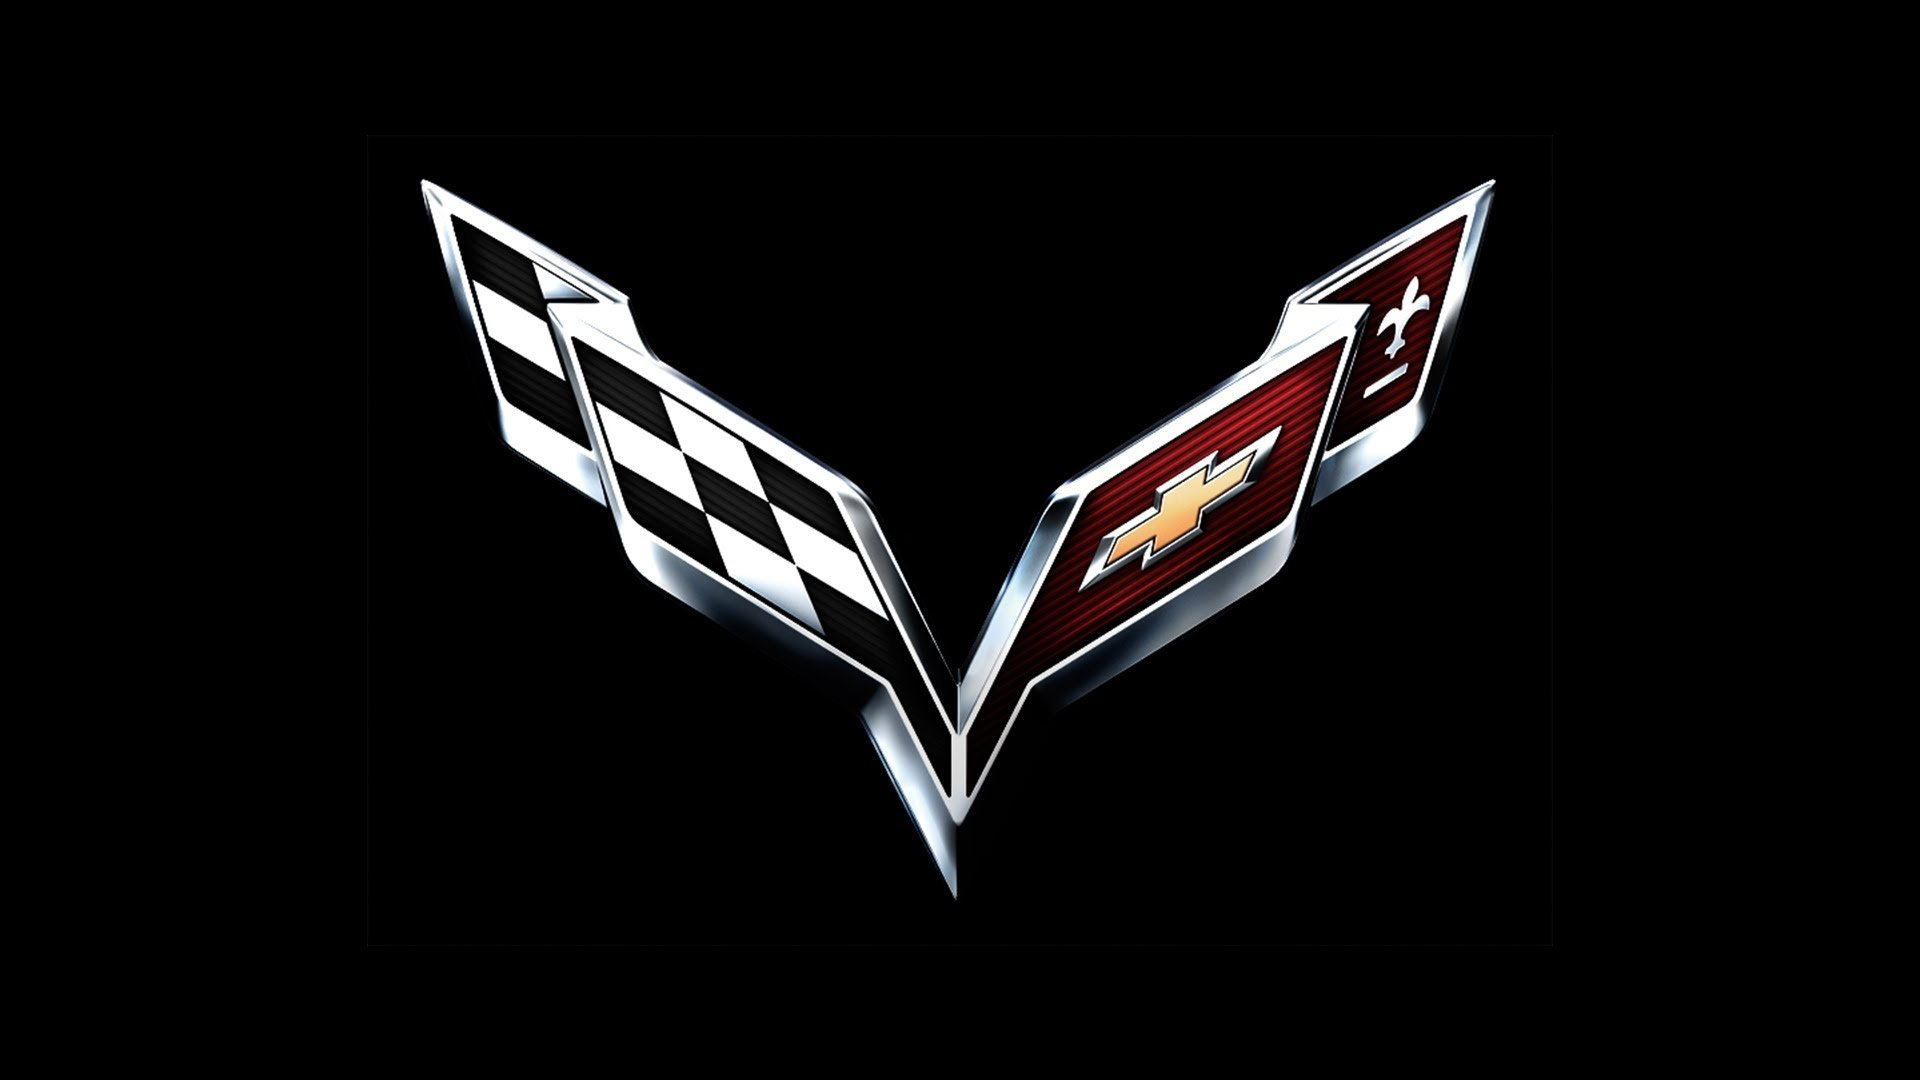 Chevrolet Corvette C7 Logo Wallpaper PicsWallpapercom 1920x1080